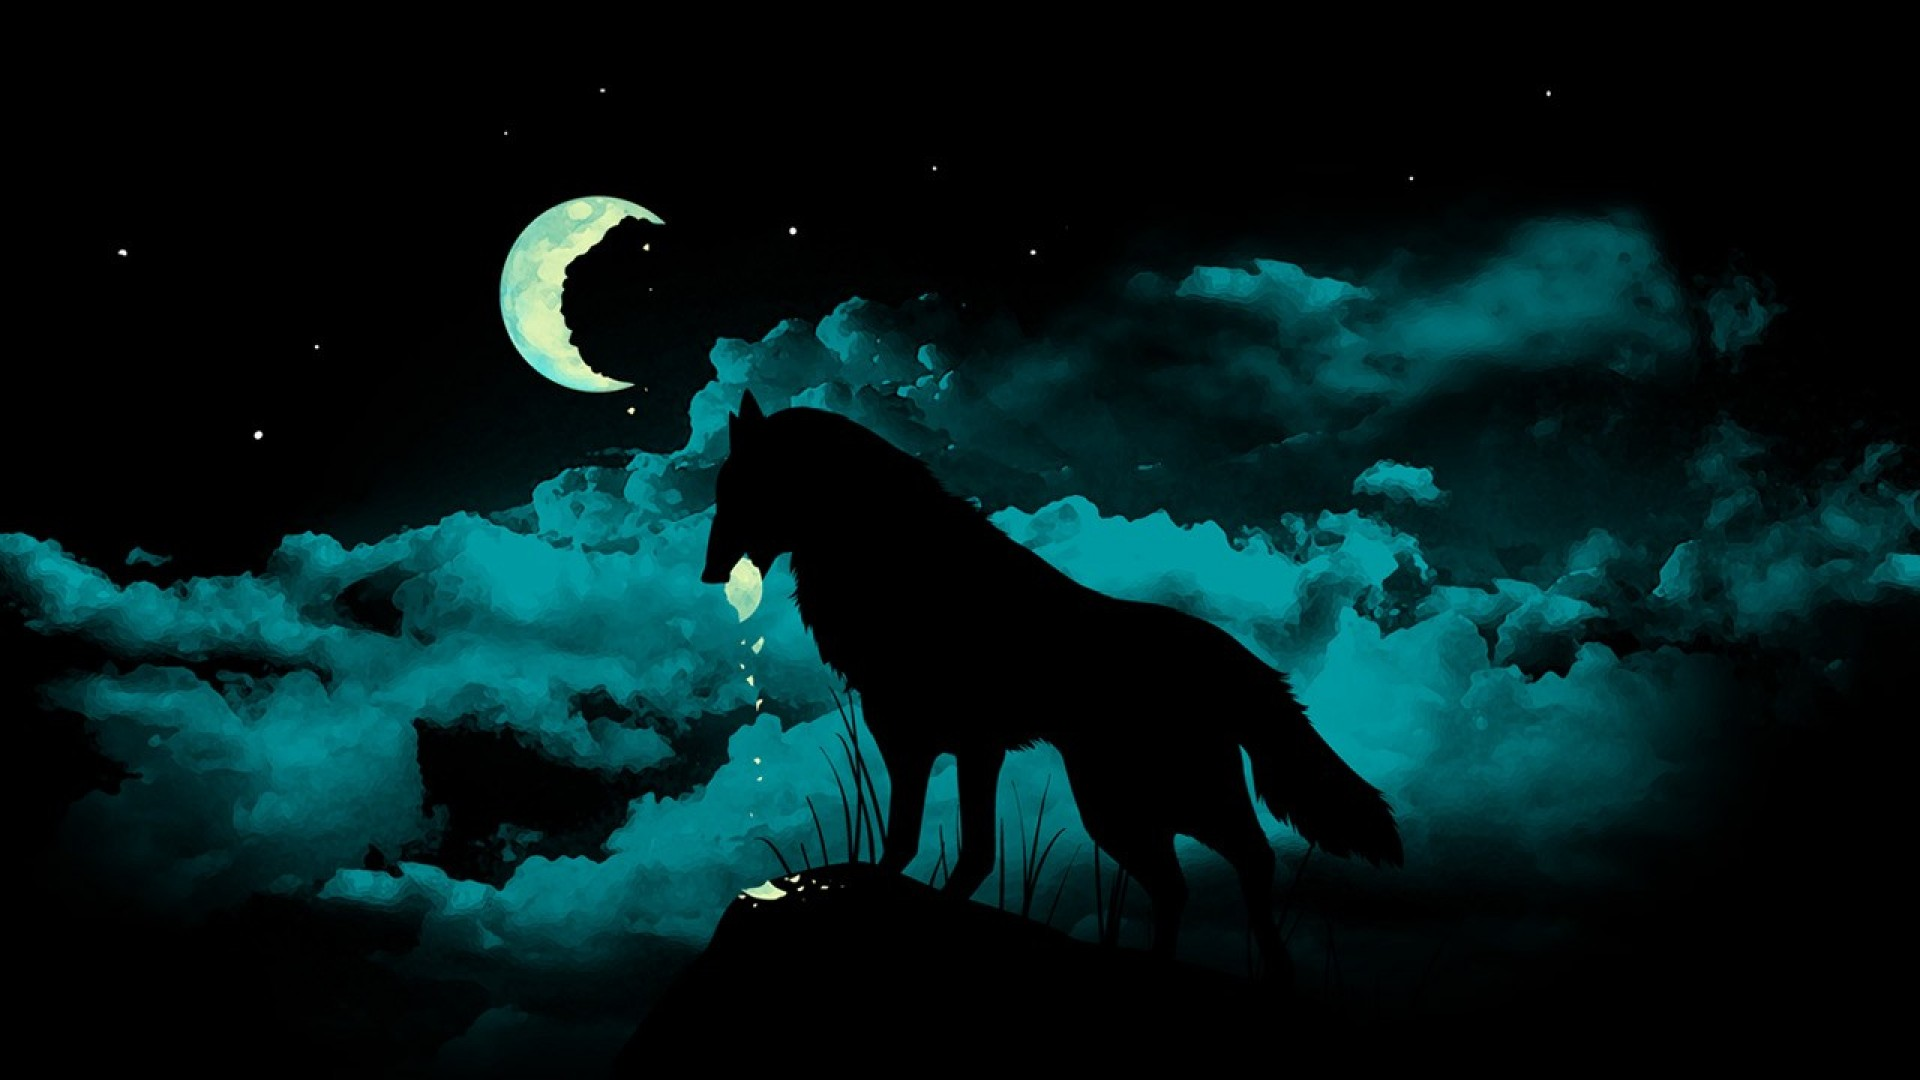 Blue Hd Wallpapers 1080p: HD Wolf Wallpapers 1080p